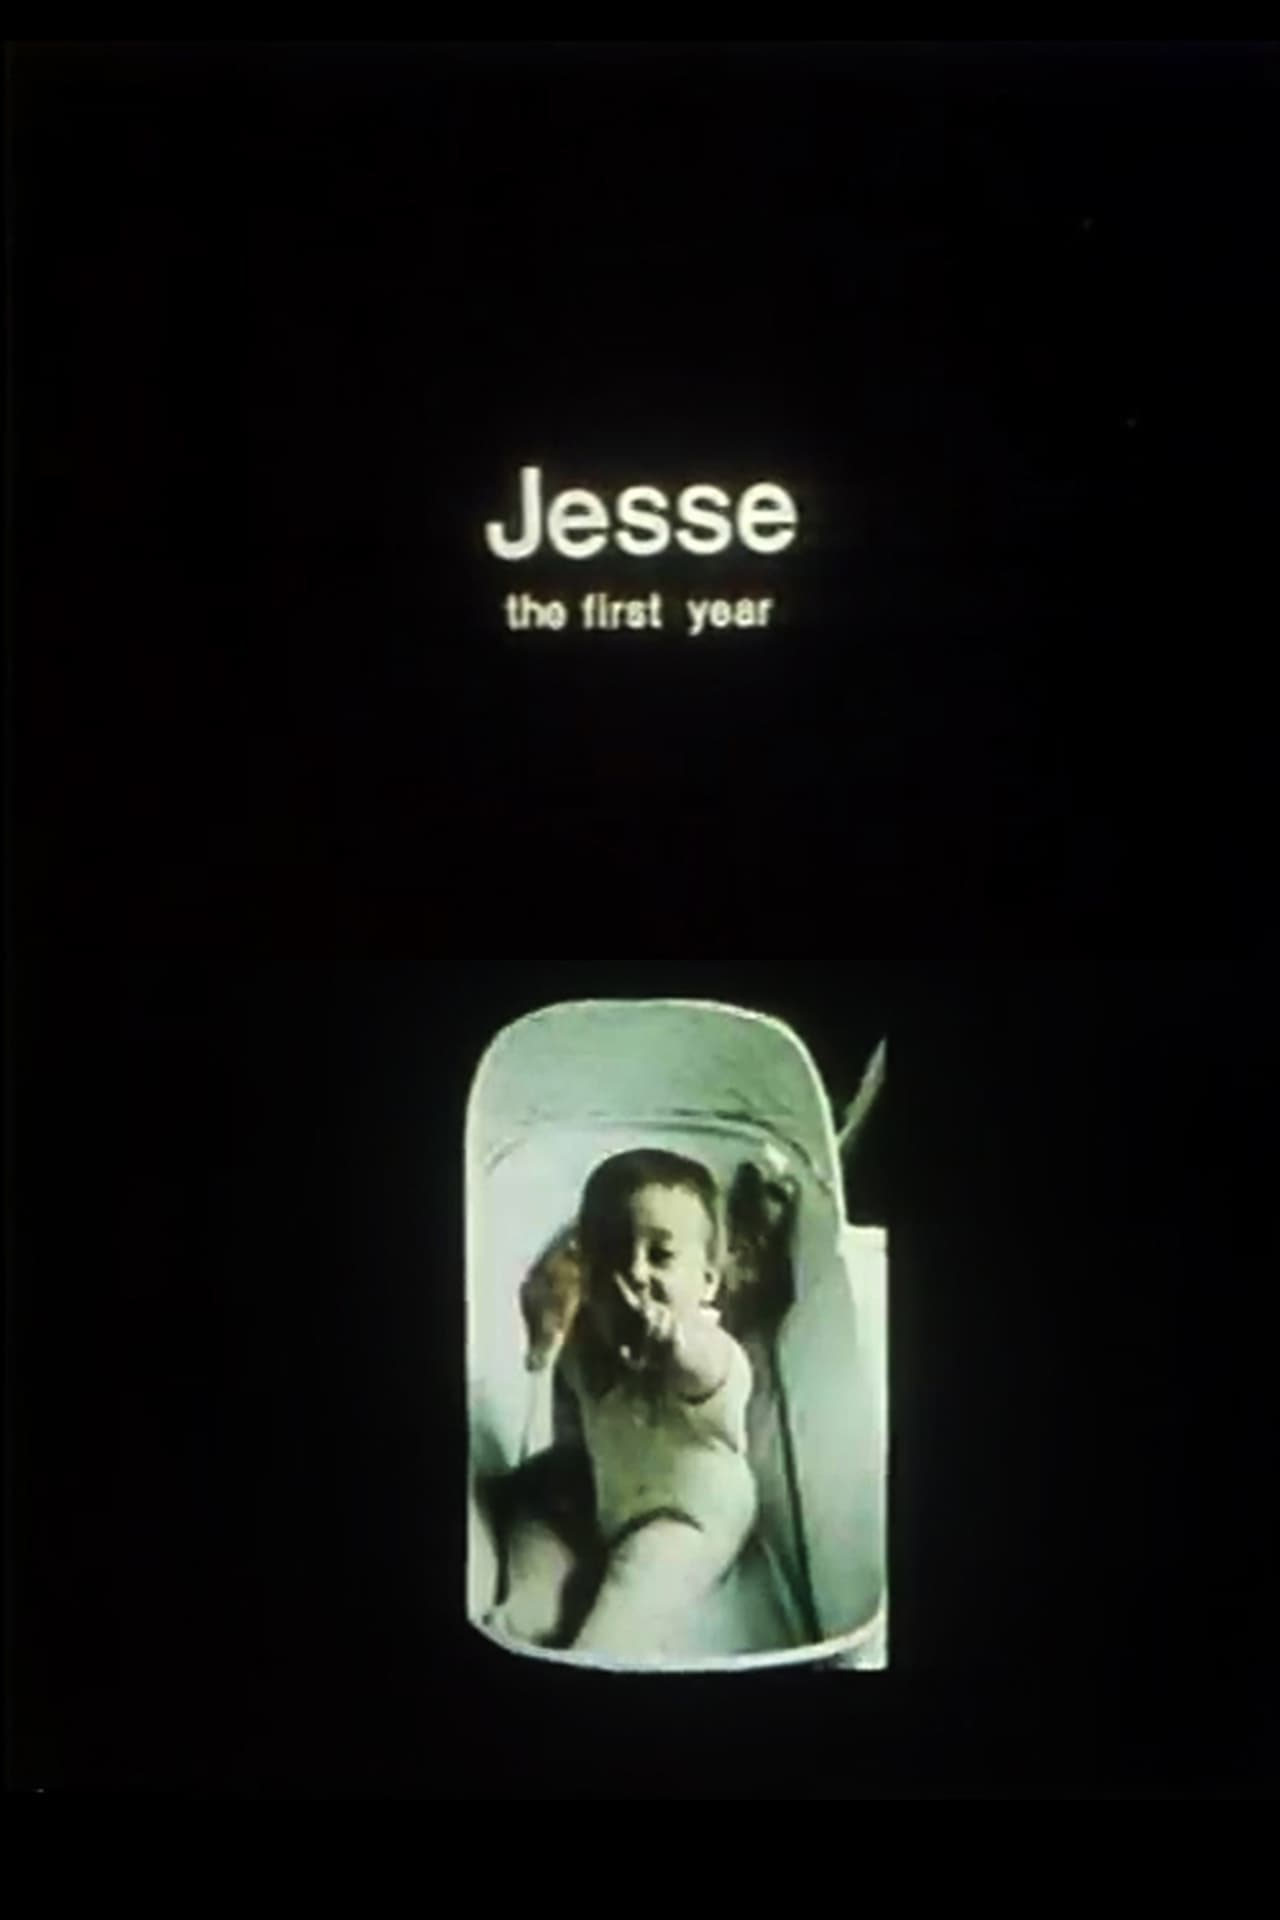 Jesse: The First Year